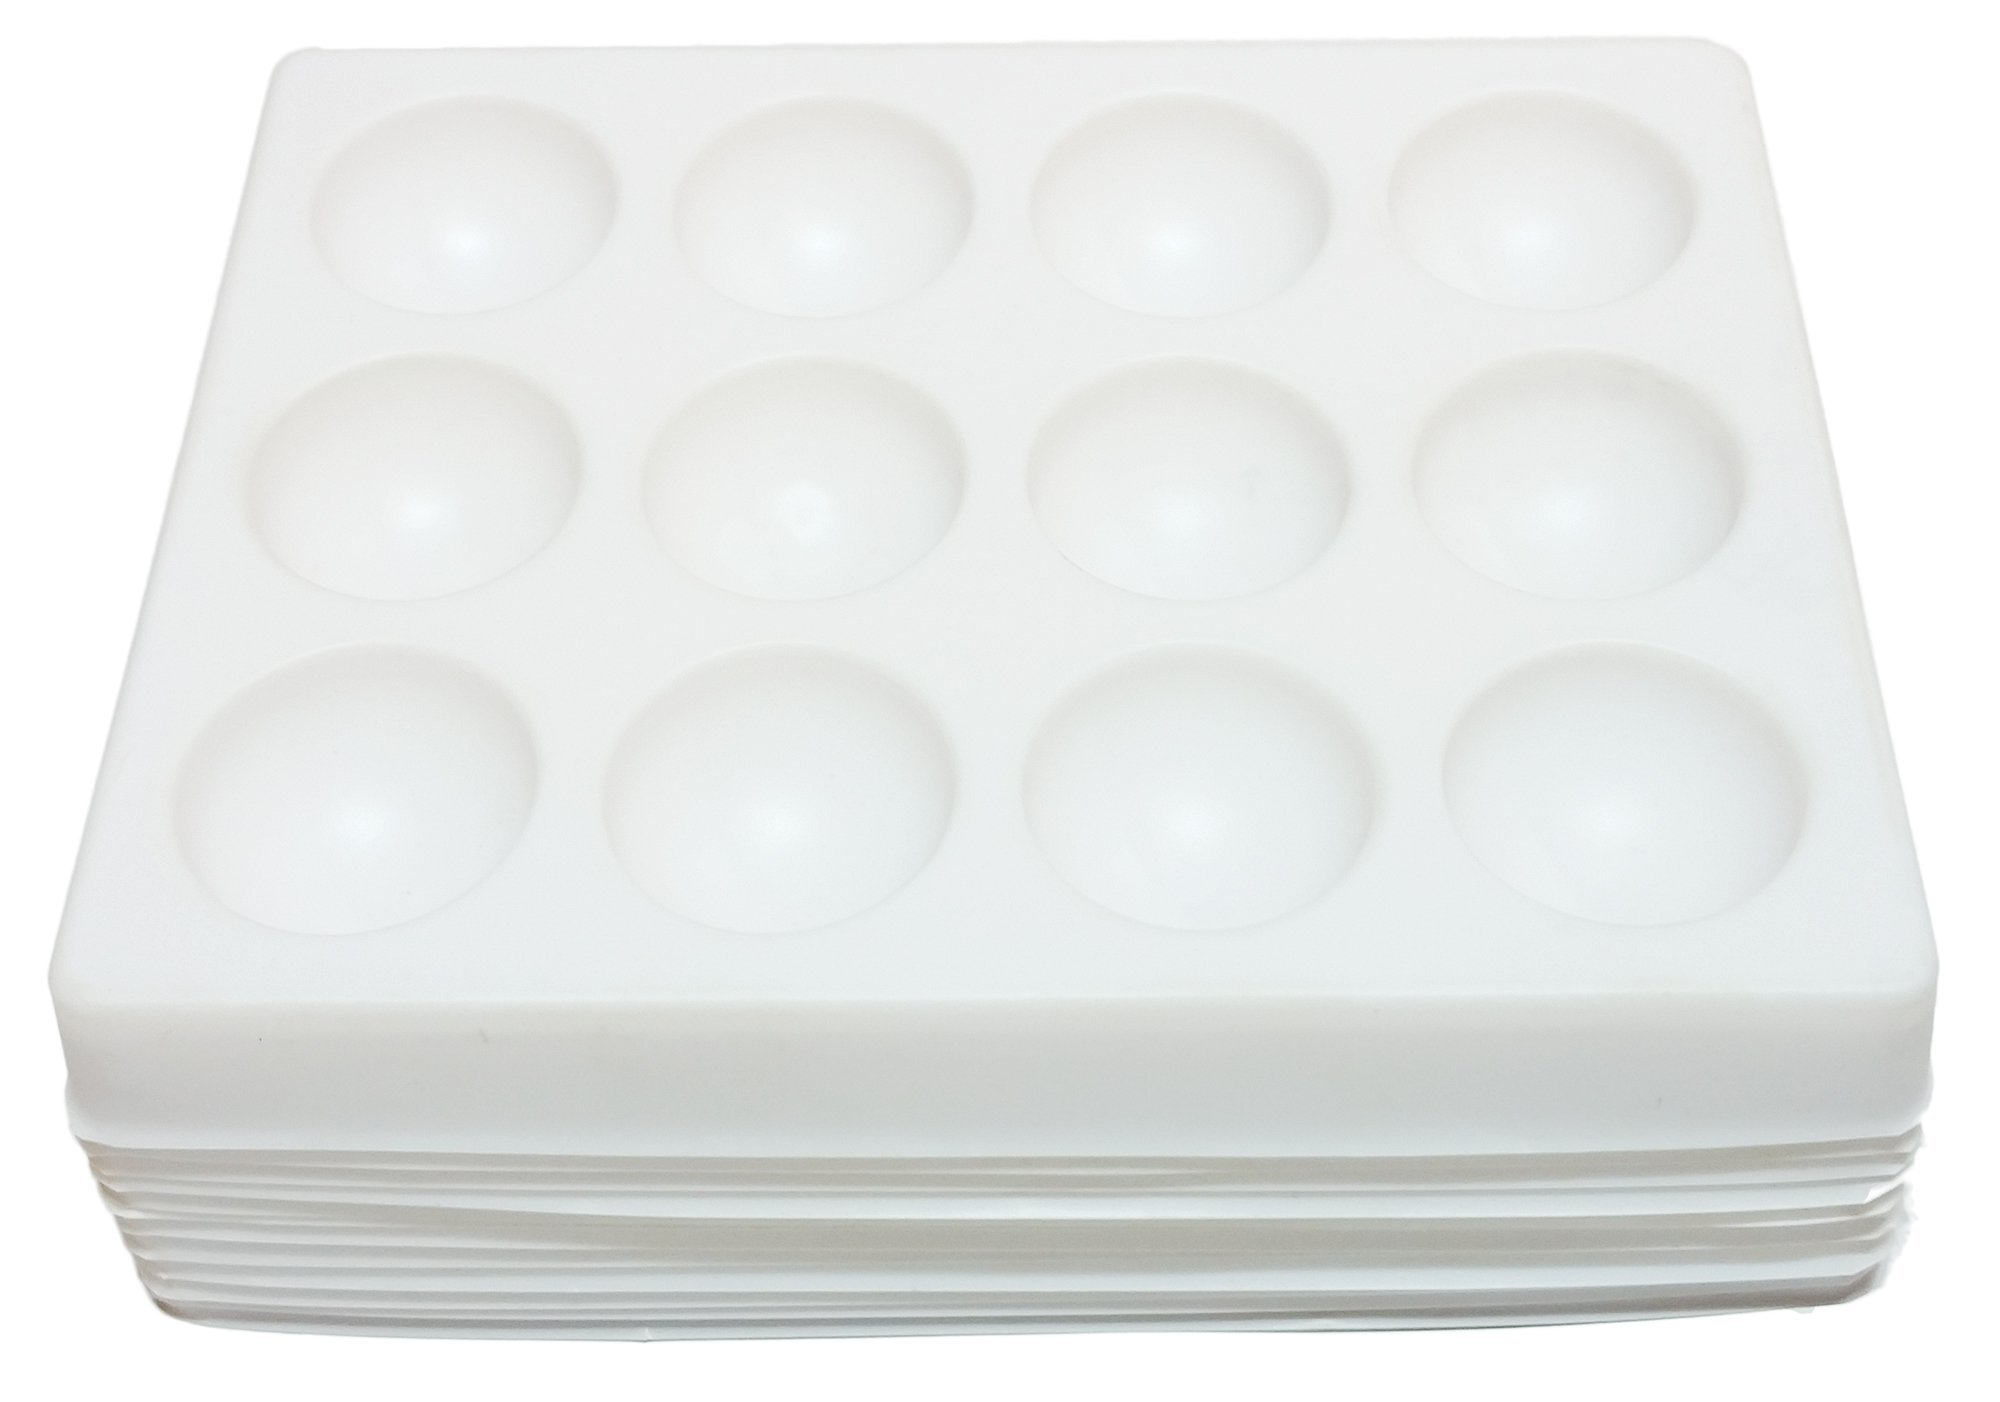 GSC International Polystyrene Spot Plates - Case of 120 by GSC International